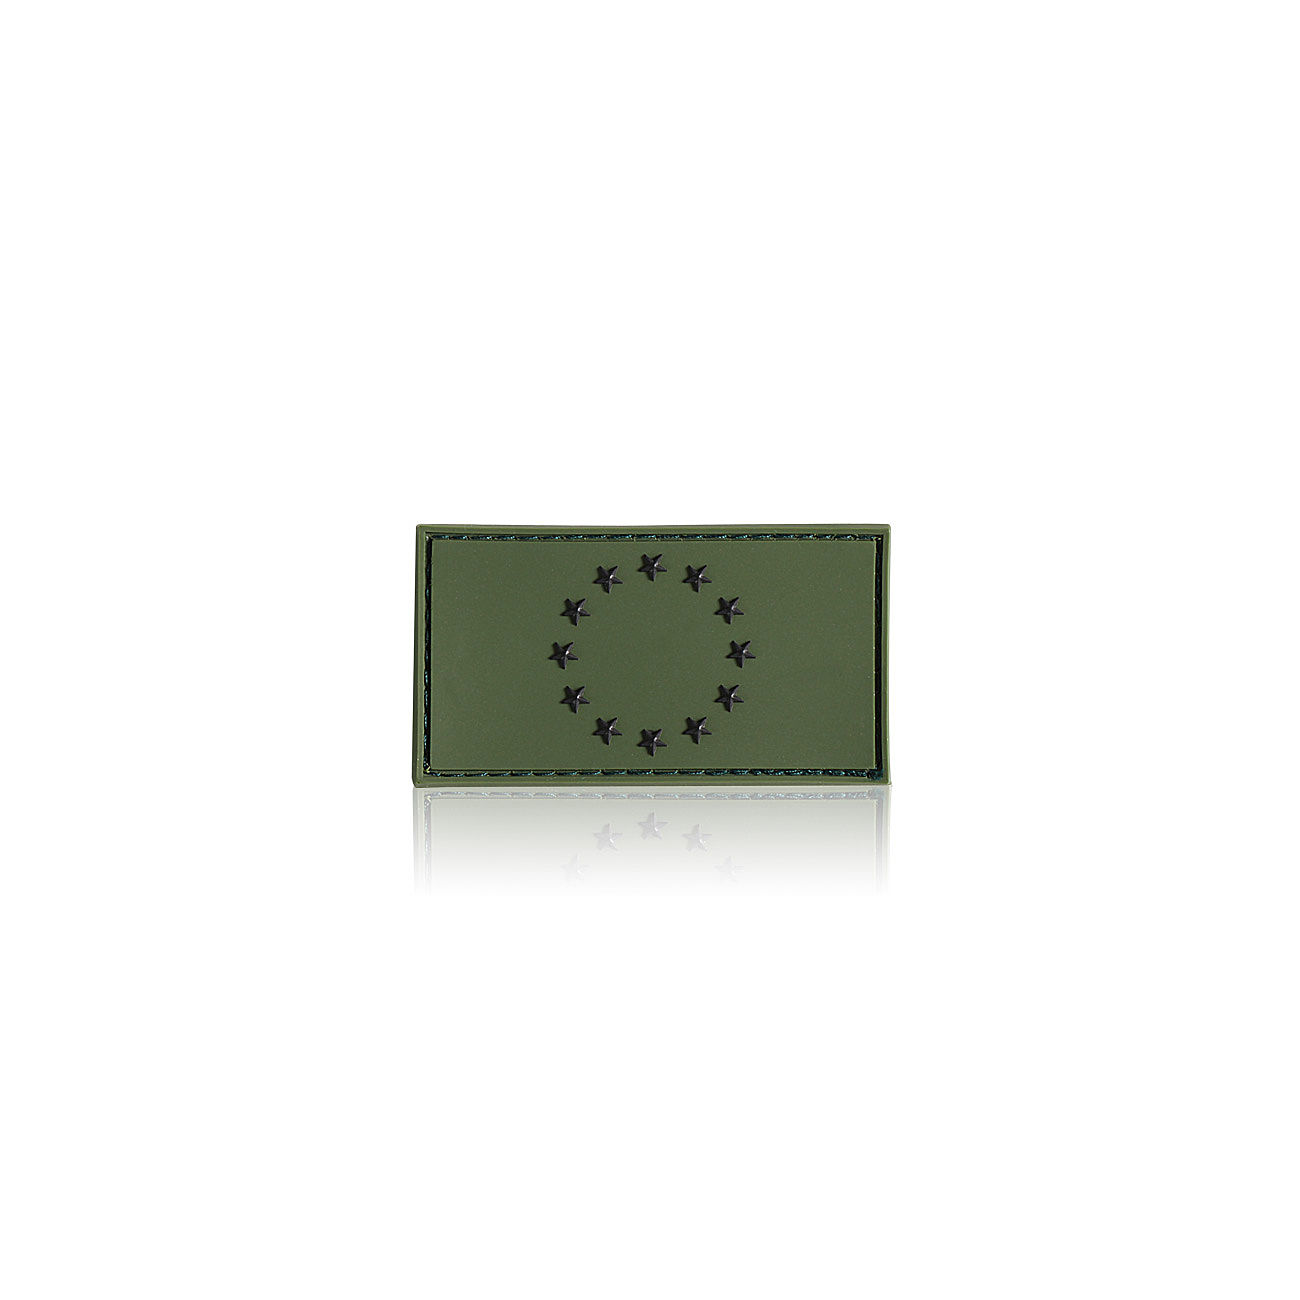 3D Rubber Patch EU Flagge oliv 0